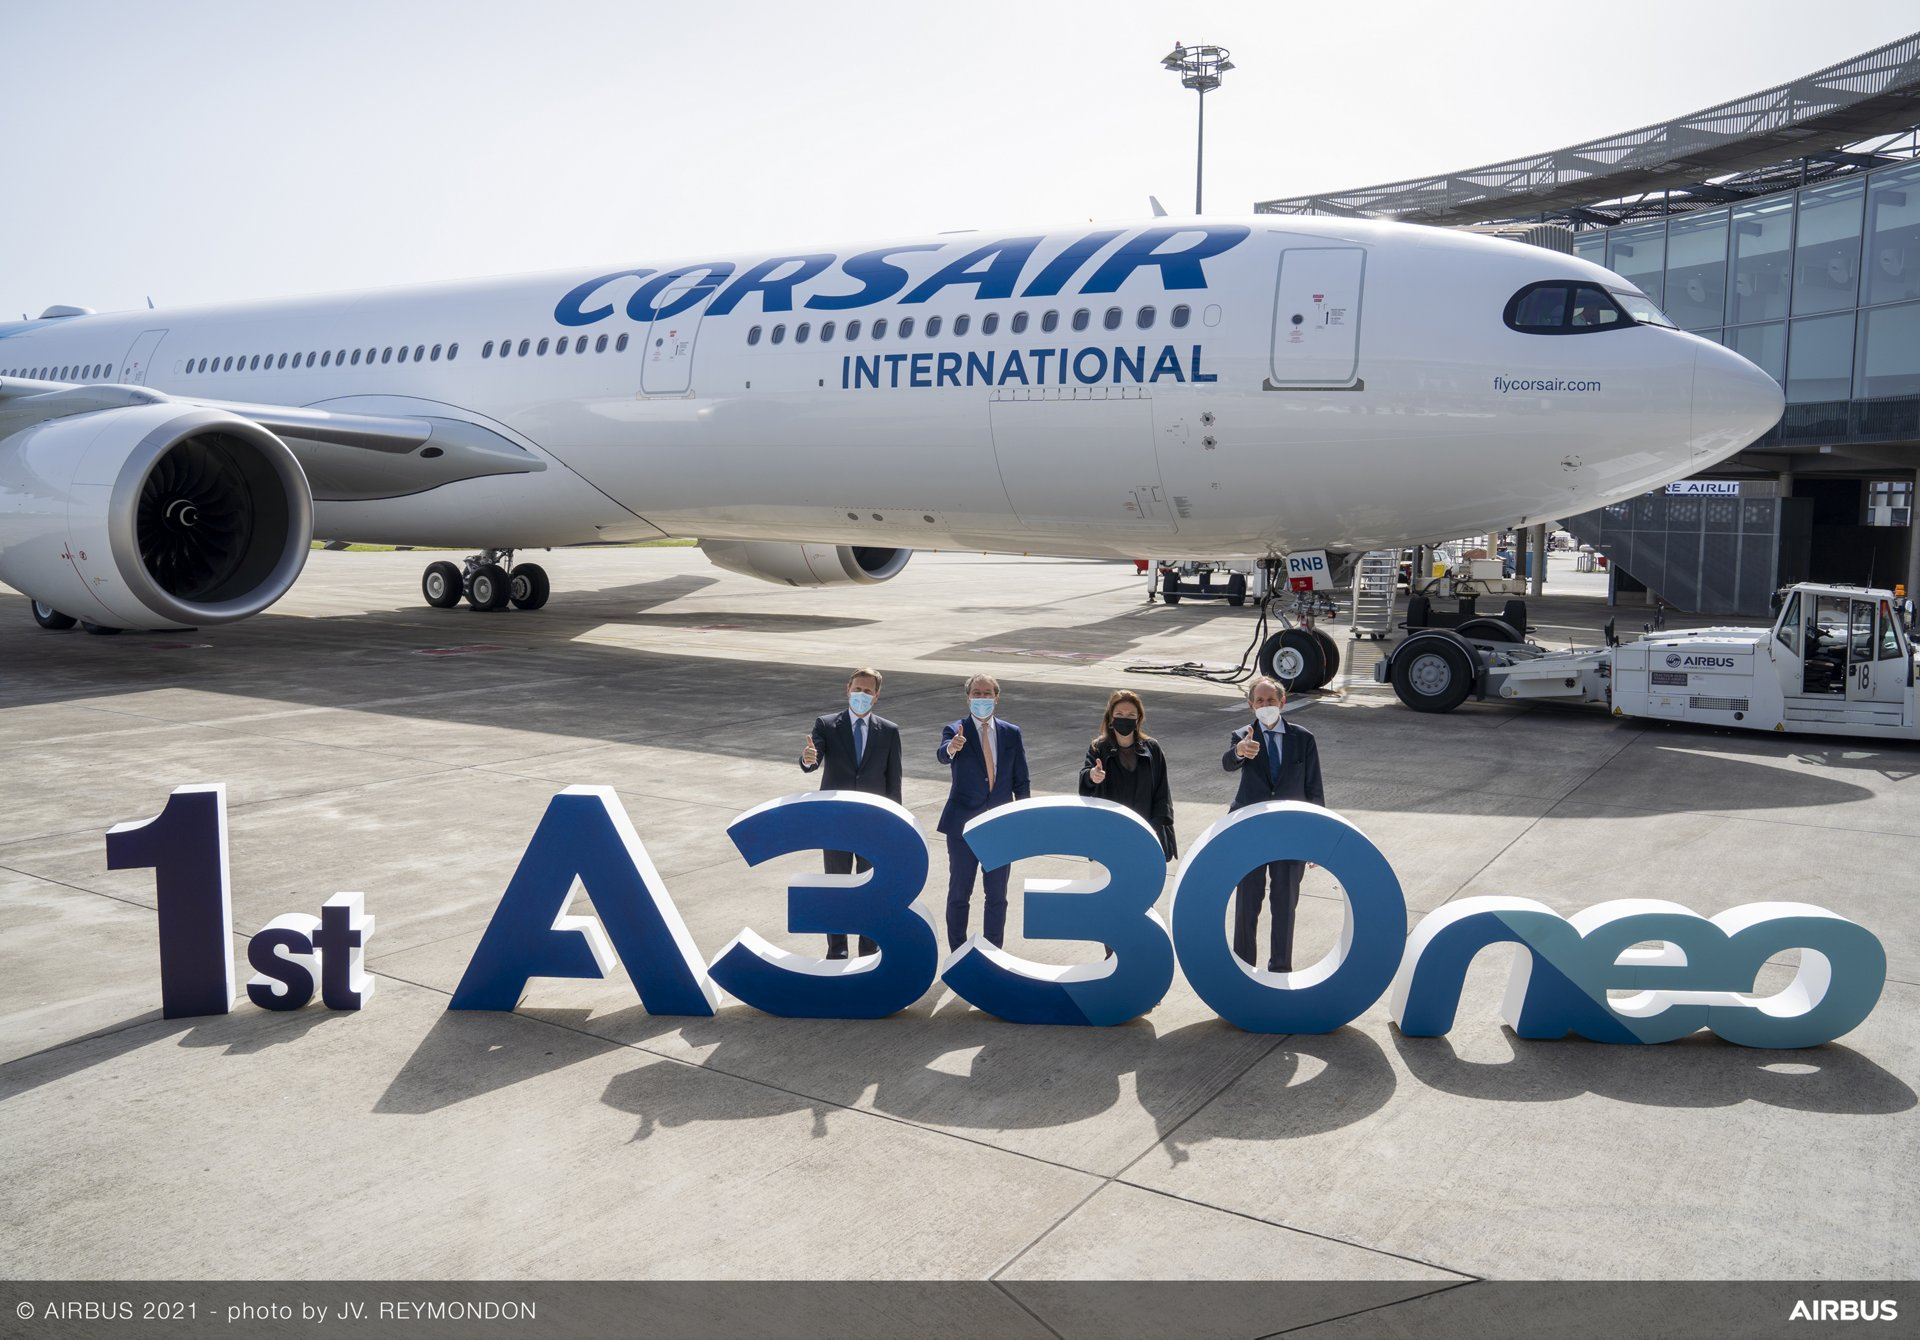 French airline Corsair takes delivery of its first Airbus A330-900 on lease from Avolon, which is powered by Rolls-Royce Trent 7000 engines; marking the delivery in Toulouse, France are (from left to right): Wouter Van Wersch, Airbus EVP, Head of Region and Sales Europe; Corsair CEO Pascal de Izaguirre; Estelle Janer, VP OEM & Contracts at Avolon; and Michel Dubarry, President, Rolls-Royce Europe & North Africa